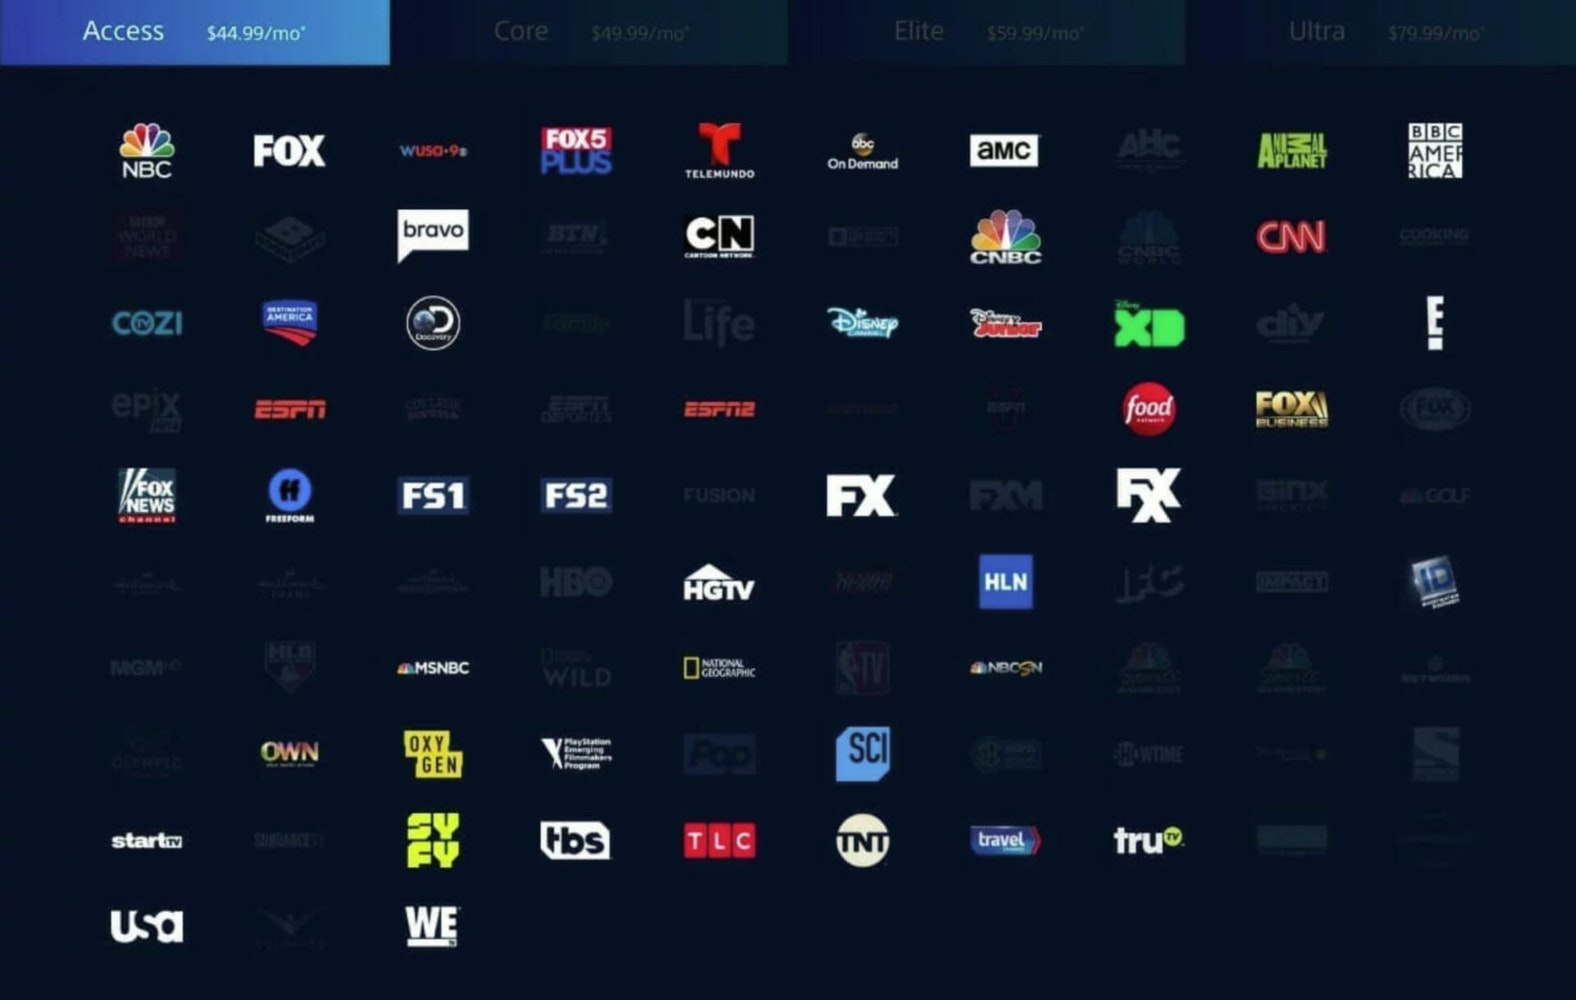 panthers texans playstation vue nfl fox streaming